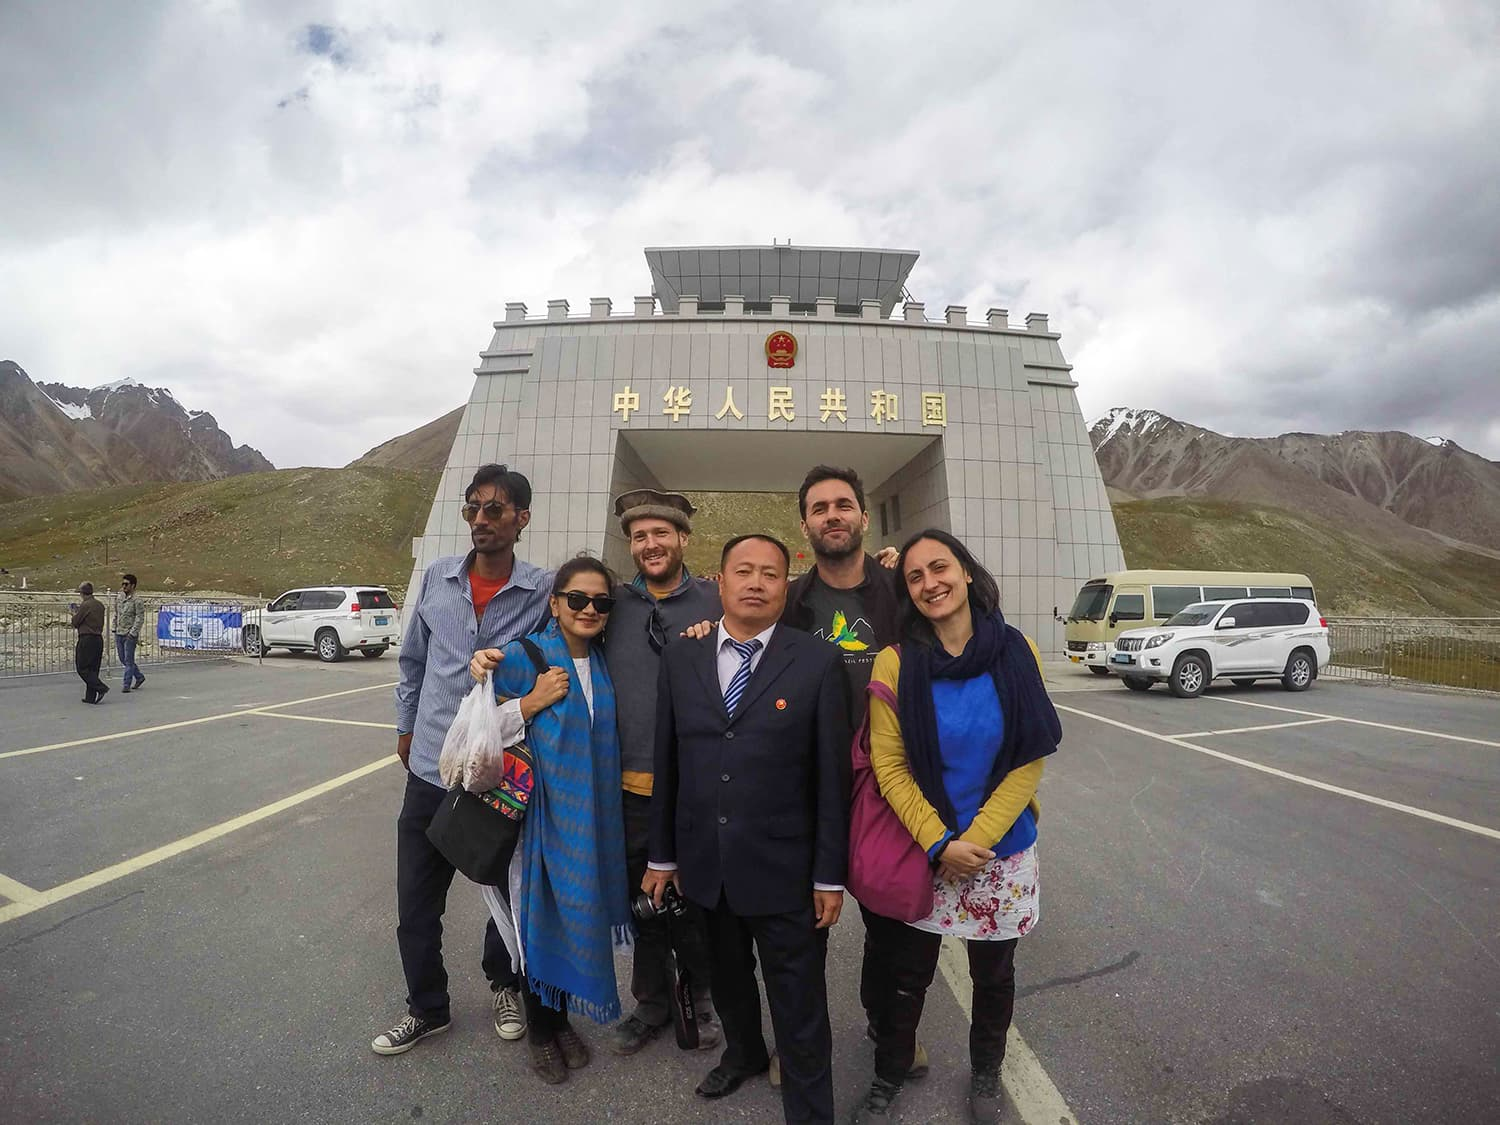 An Australian, American, Italian, Pakistani, their trusty driver and a random Chinese person pose at the Khunjerab Pass. Everywhere I went, people wanted to get their photos taken with me and then, of course, they would offer me chai. —Madeeha Syed